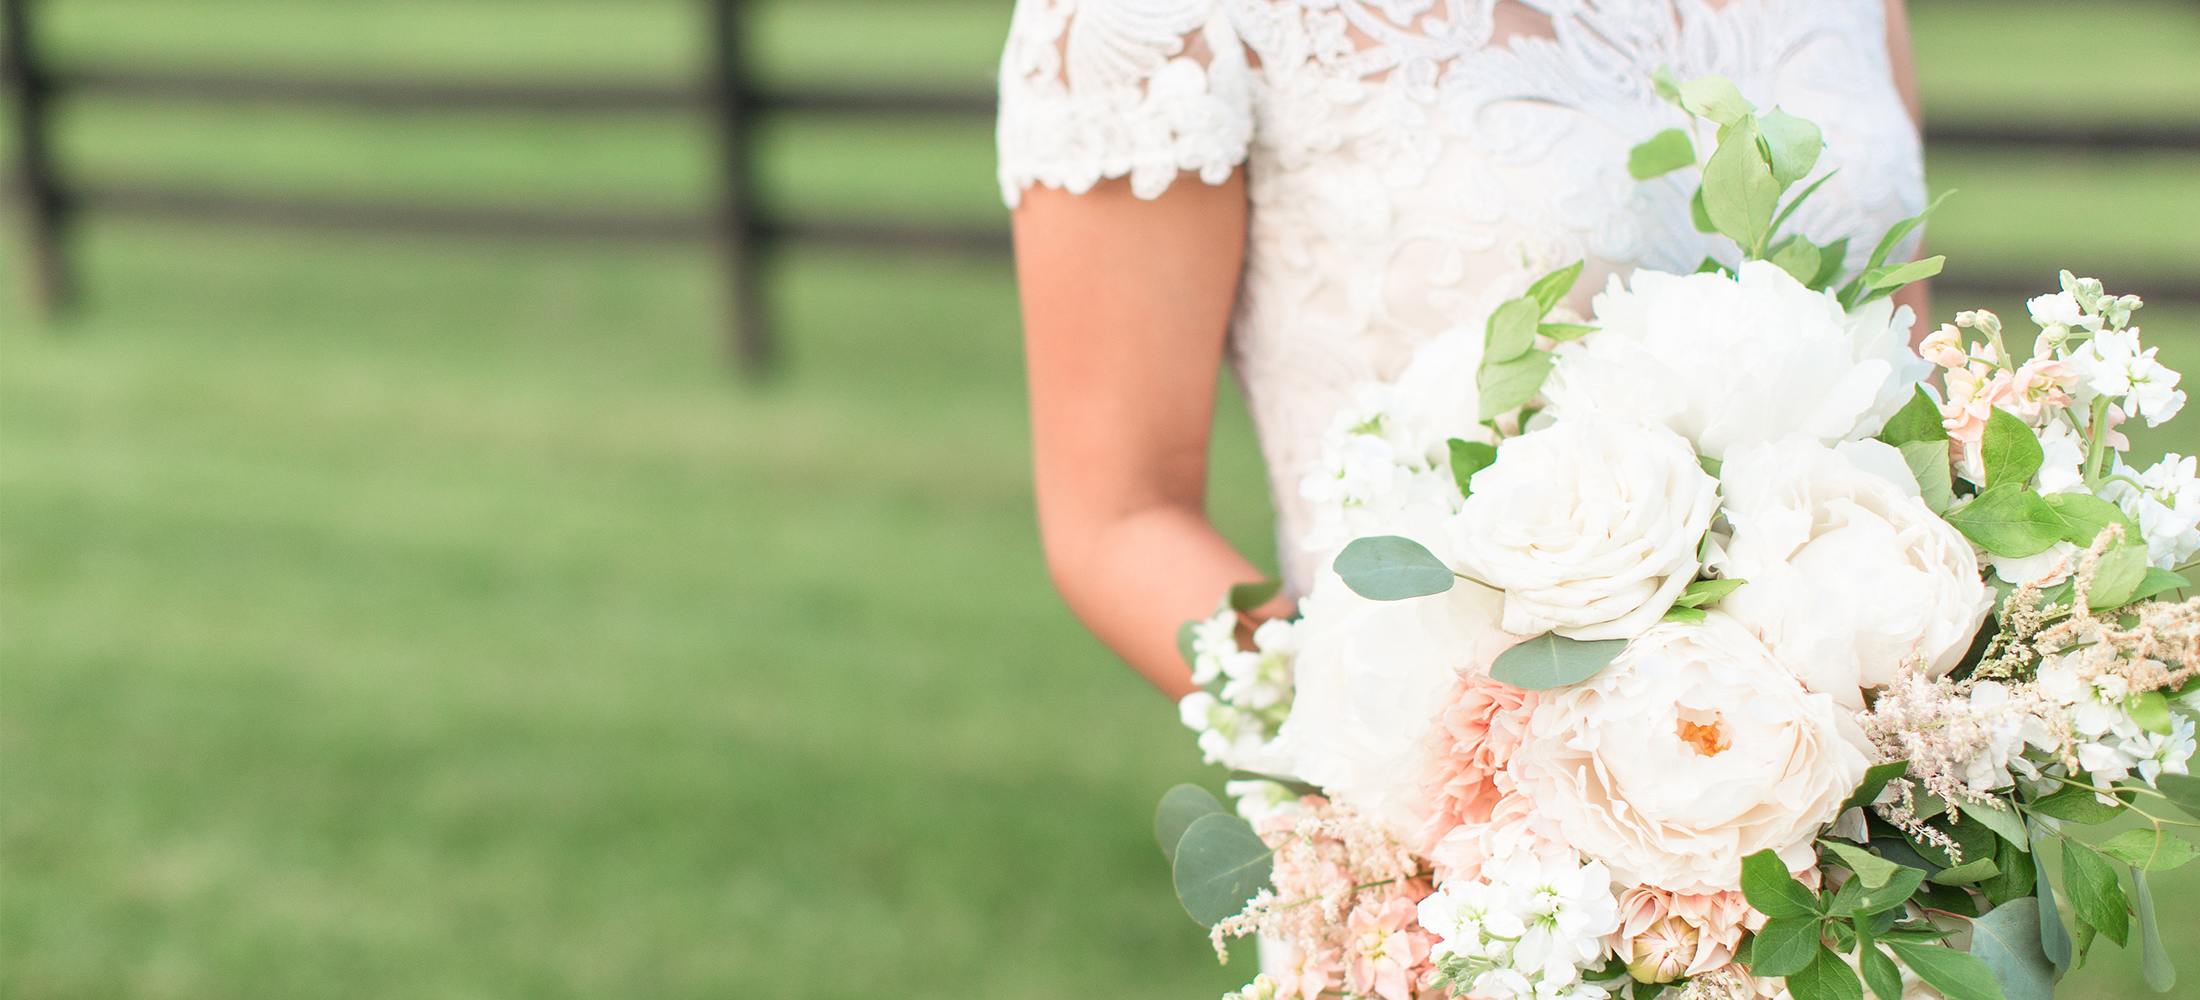 Image of a bride holding a beautiful white and peach bouquet for her wedding